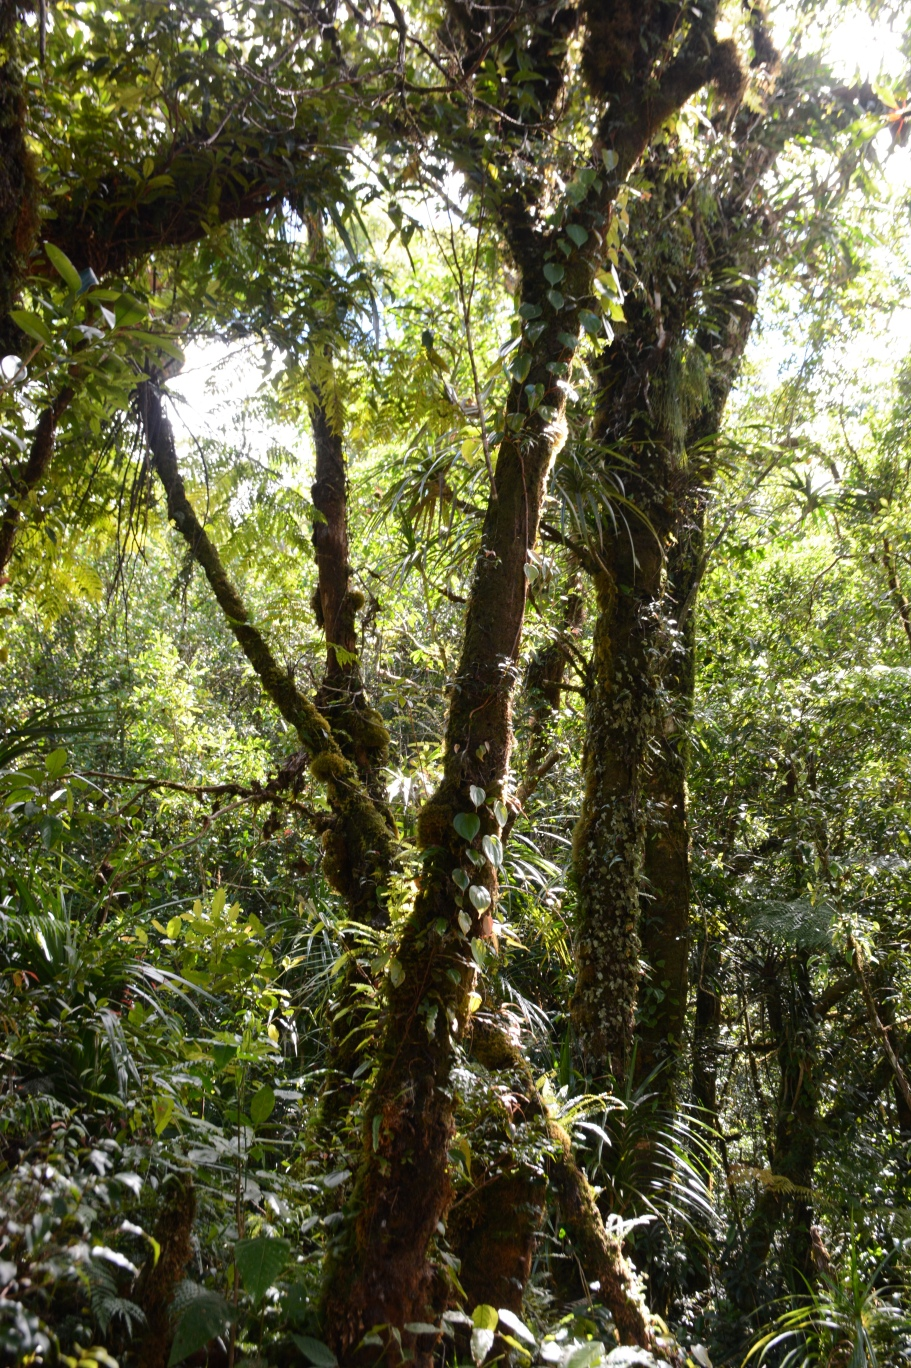 The beginnings of the cloud forest. Epiphytes climb the stunted trees, and sunlight pours through the canopy.